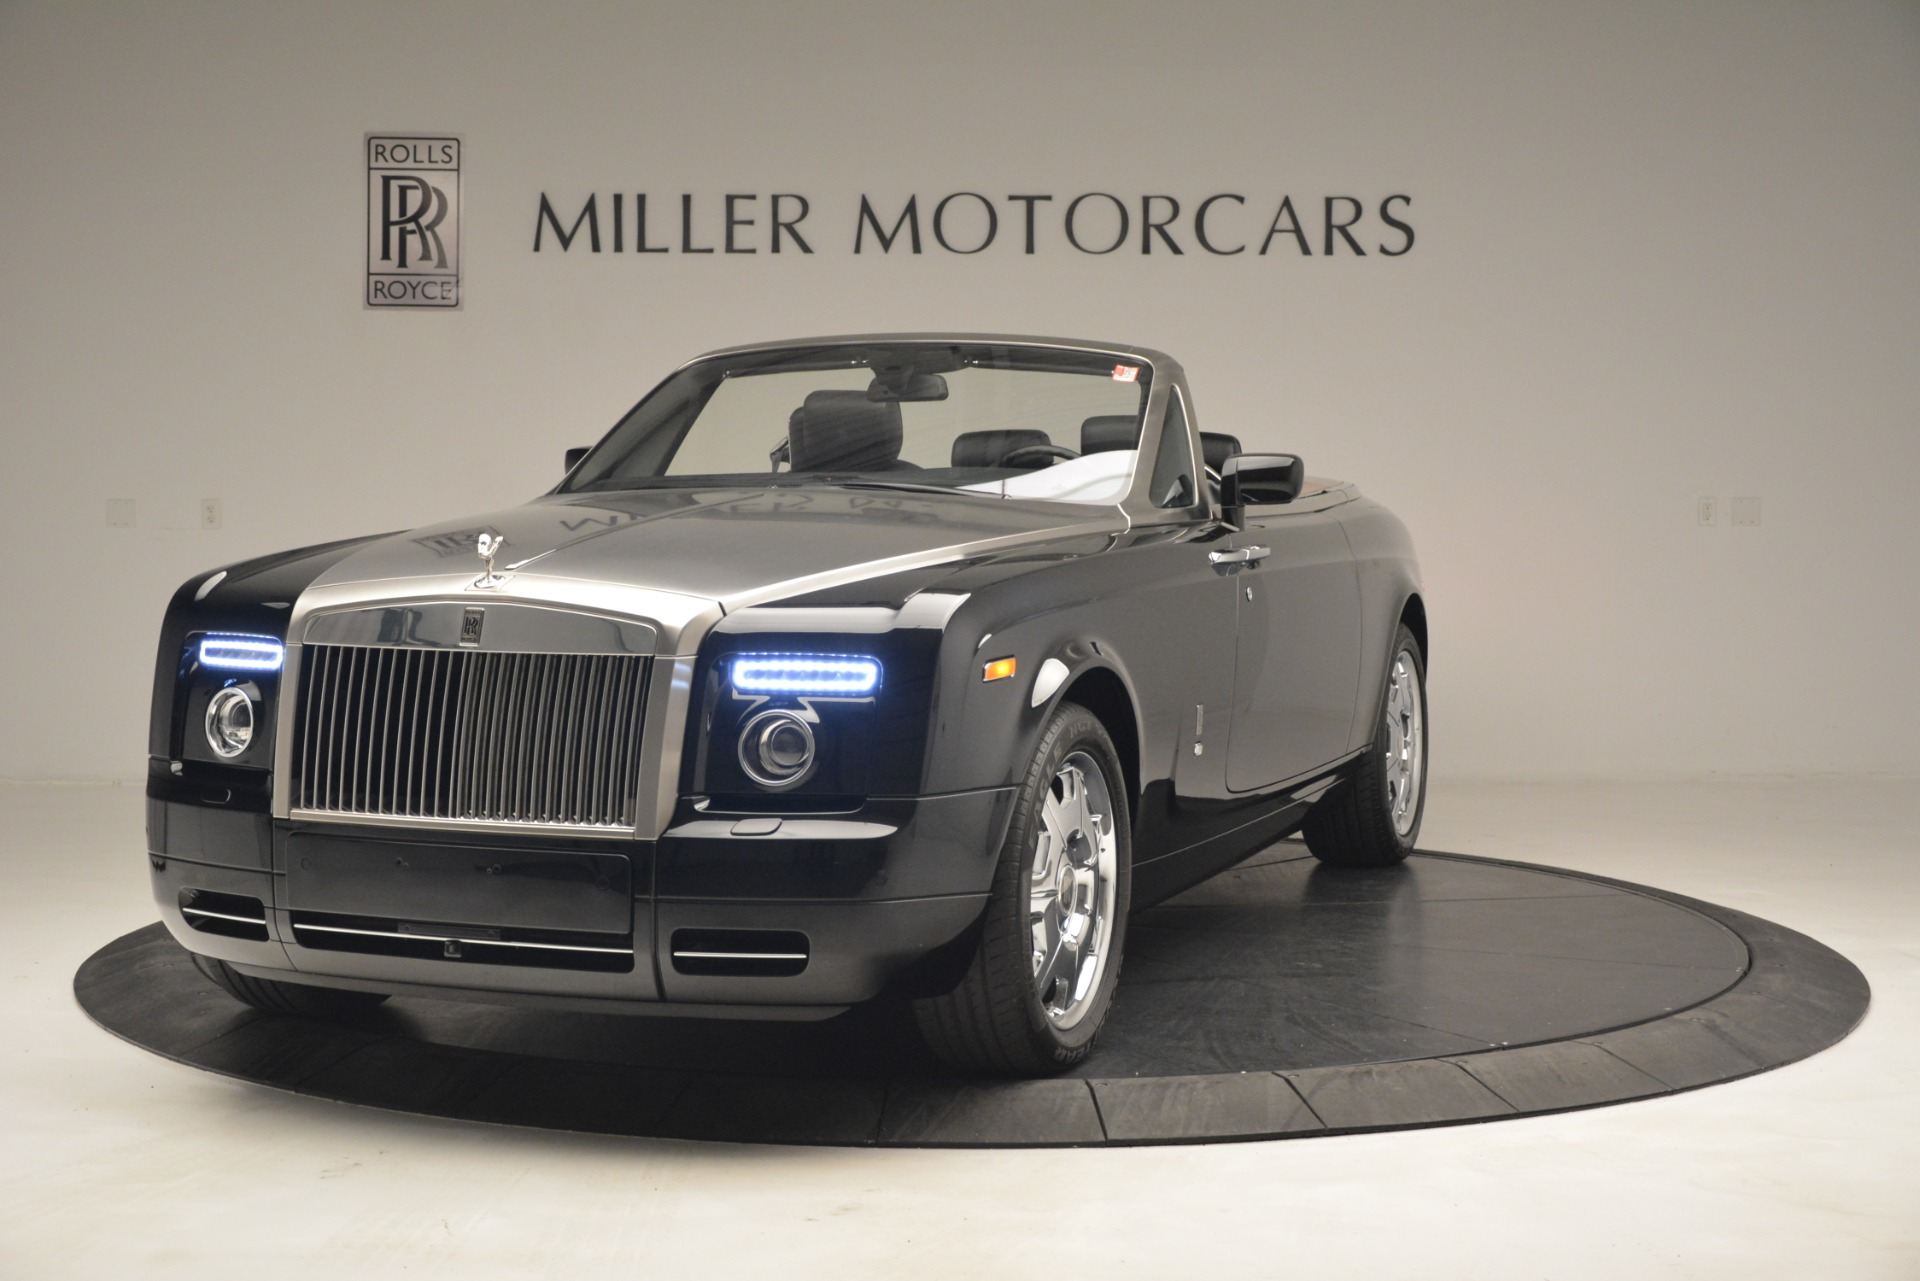 Used 2008 Rolls-Royce Phantom Drophead Coupe for sale Sold at McLaren Greenwich in Greenwich CT 06830 1